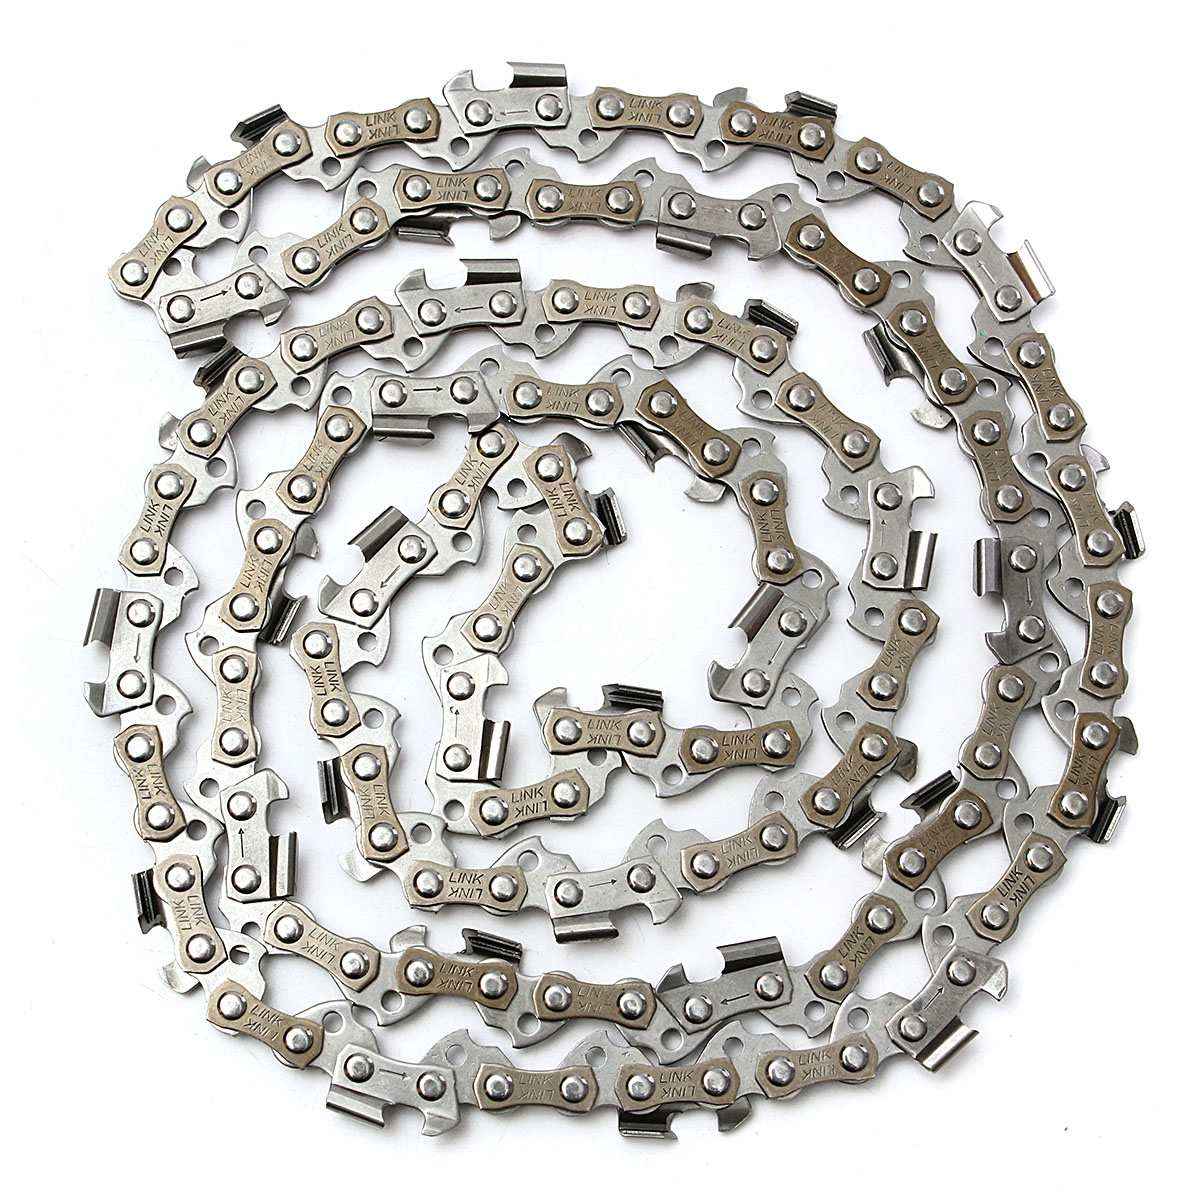 1PC 4 Types 12/16/18/20 Chainsaw Saw Chain Blade 3/8LP Chain Accessory Part 96pcs 130mm scroll saw blade 12 lots jig cutting wood metal spiral teeth 1 8 12pcs lots 8 96pcs